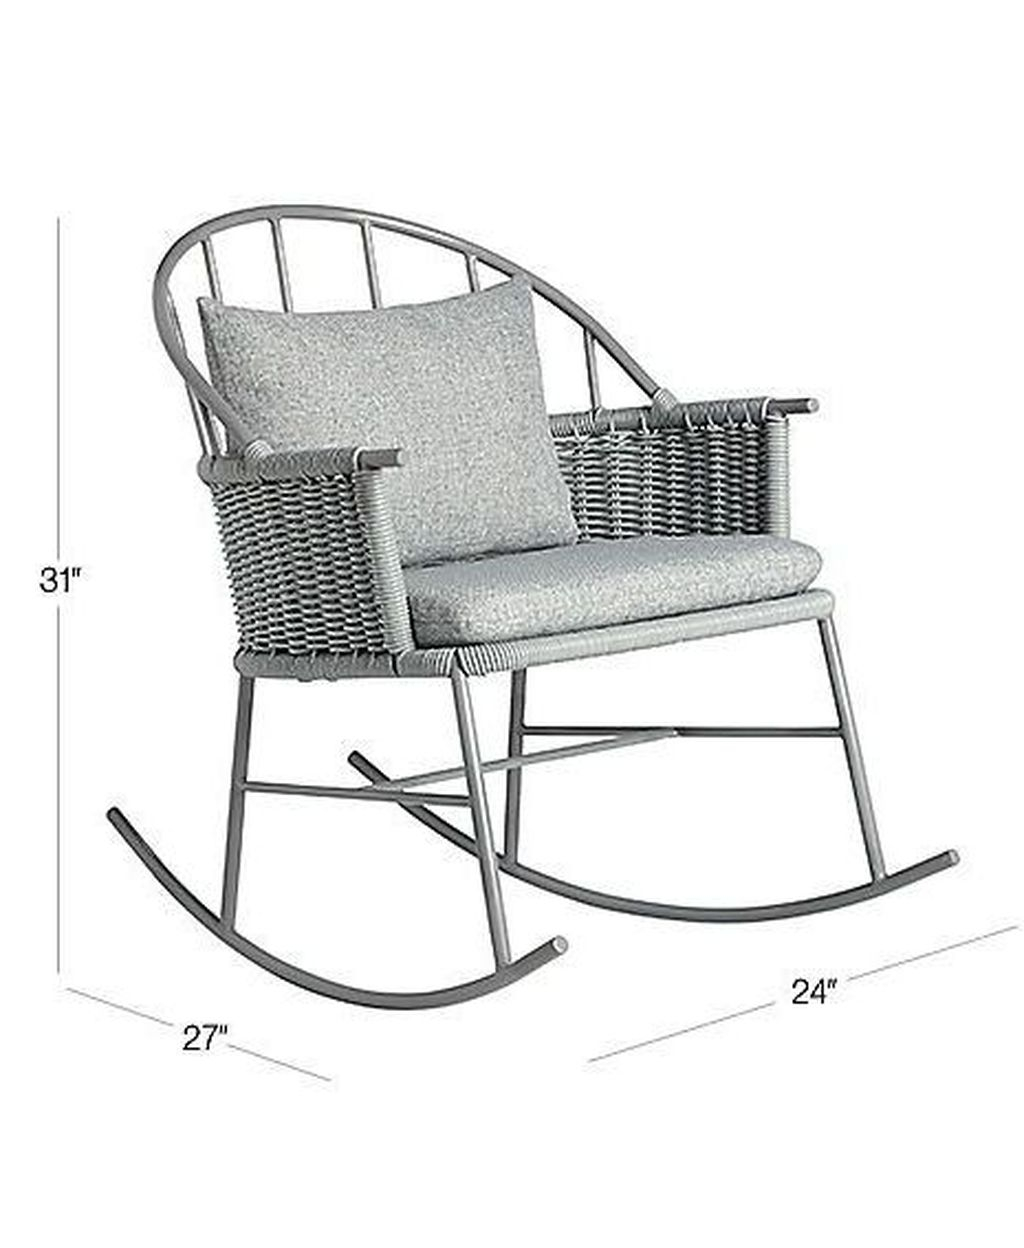 Superb Rocking Chairs Design Ideas For Your Relaxing 11